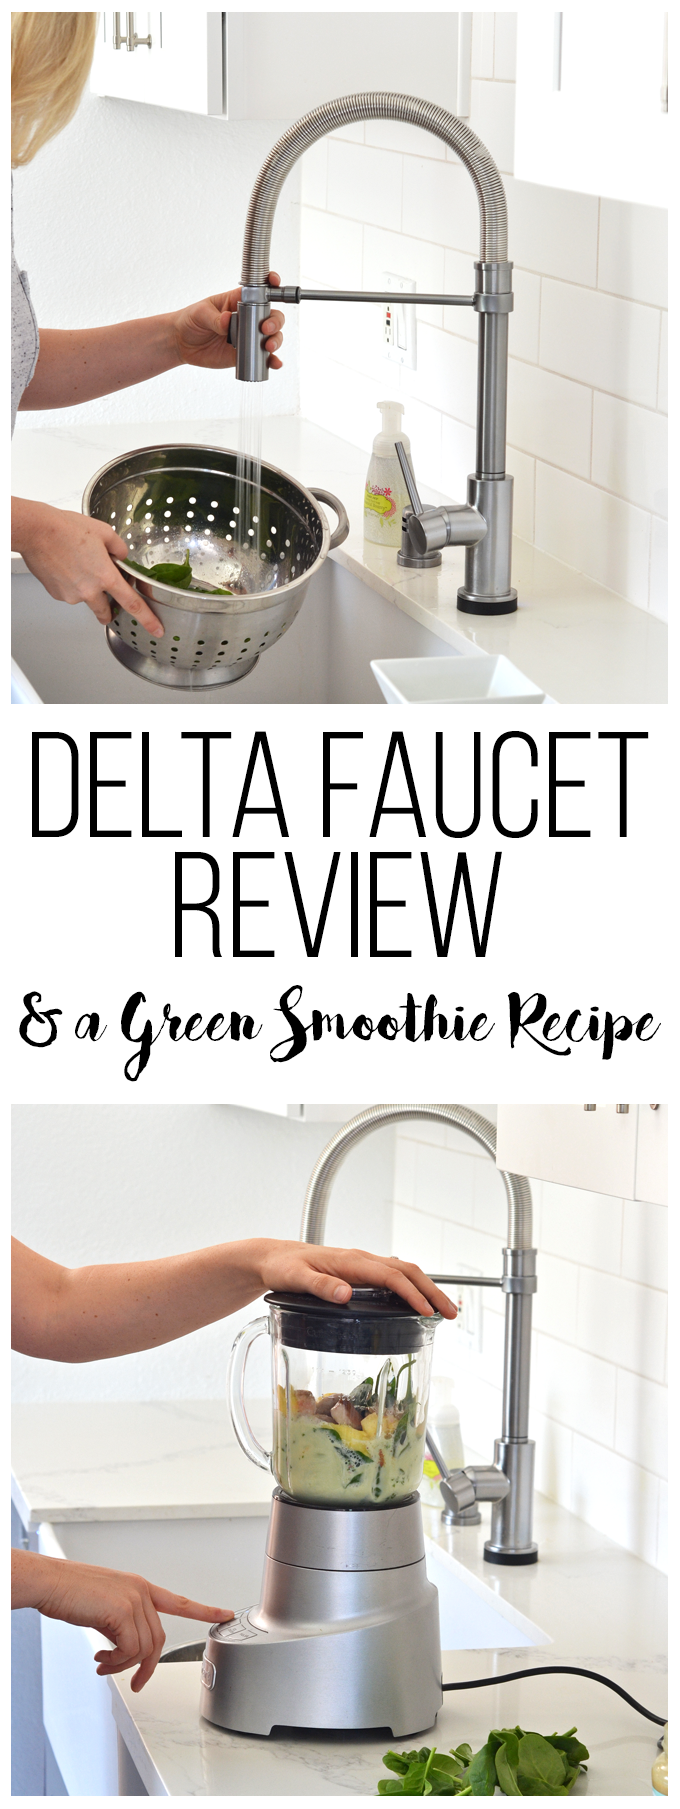 This Delta Faucet has touch2O technology to make cleaning dishes and rinsing greens a breeze!